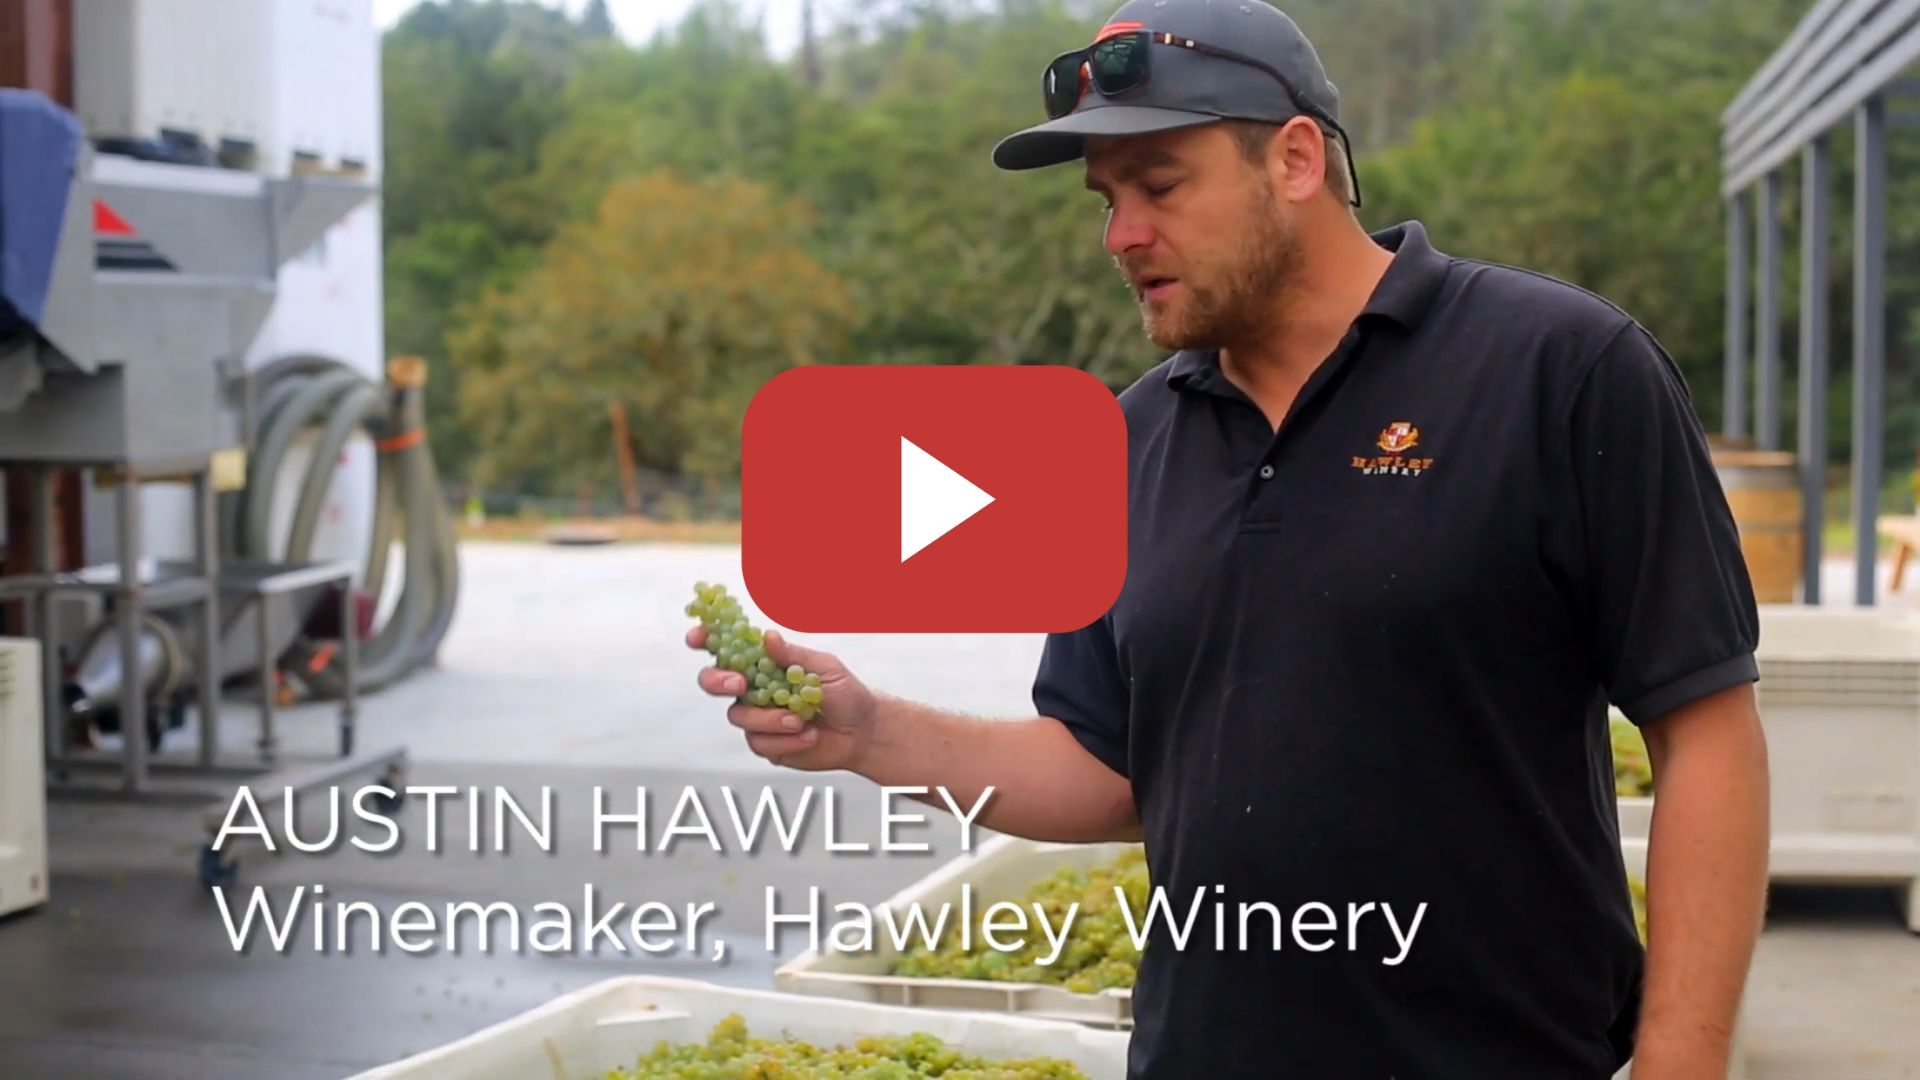 Austin Hawley introduces the First Grapes of 2019 Harvest